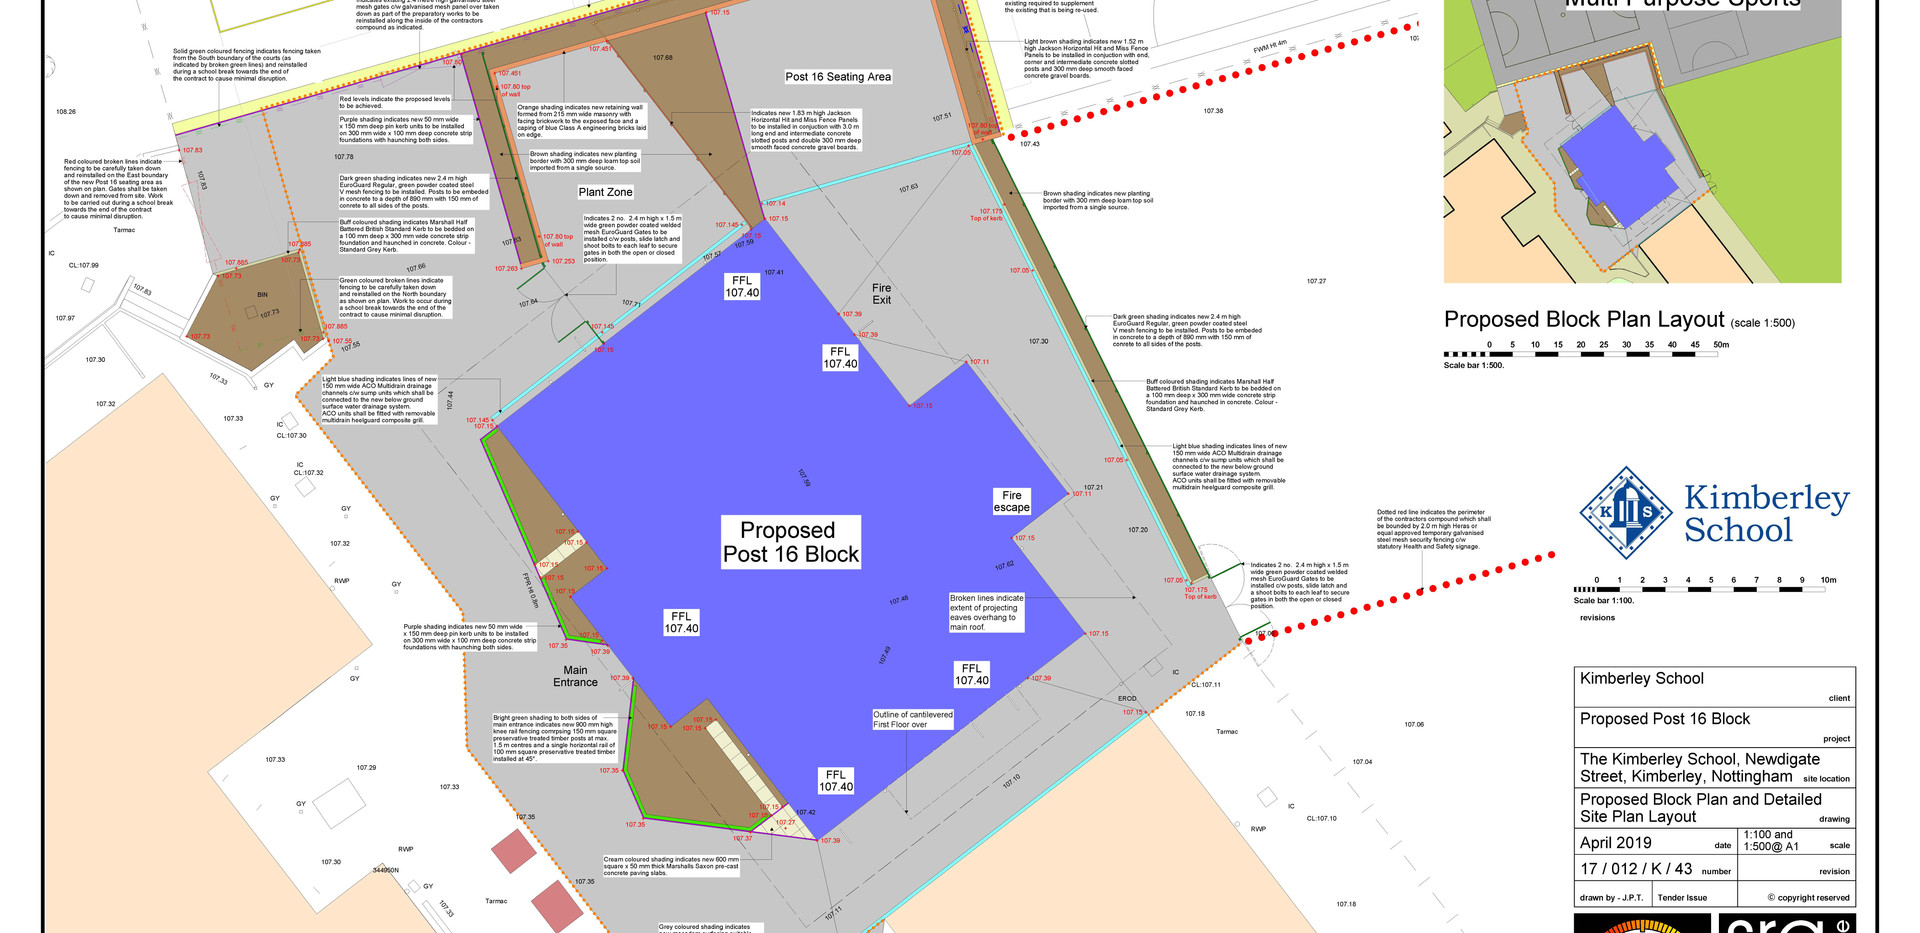 43_Proposed Block Plan and Detailed Site